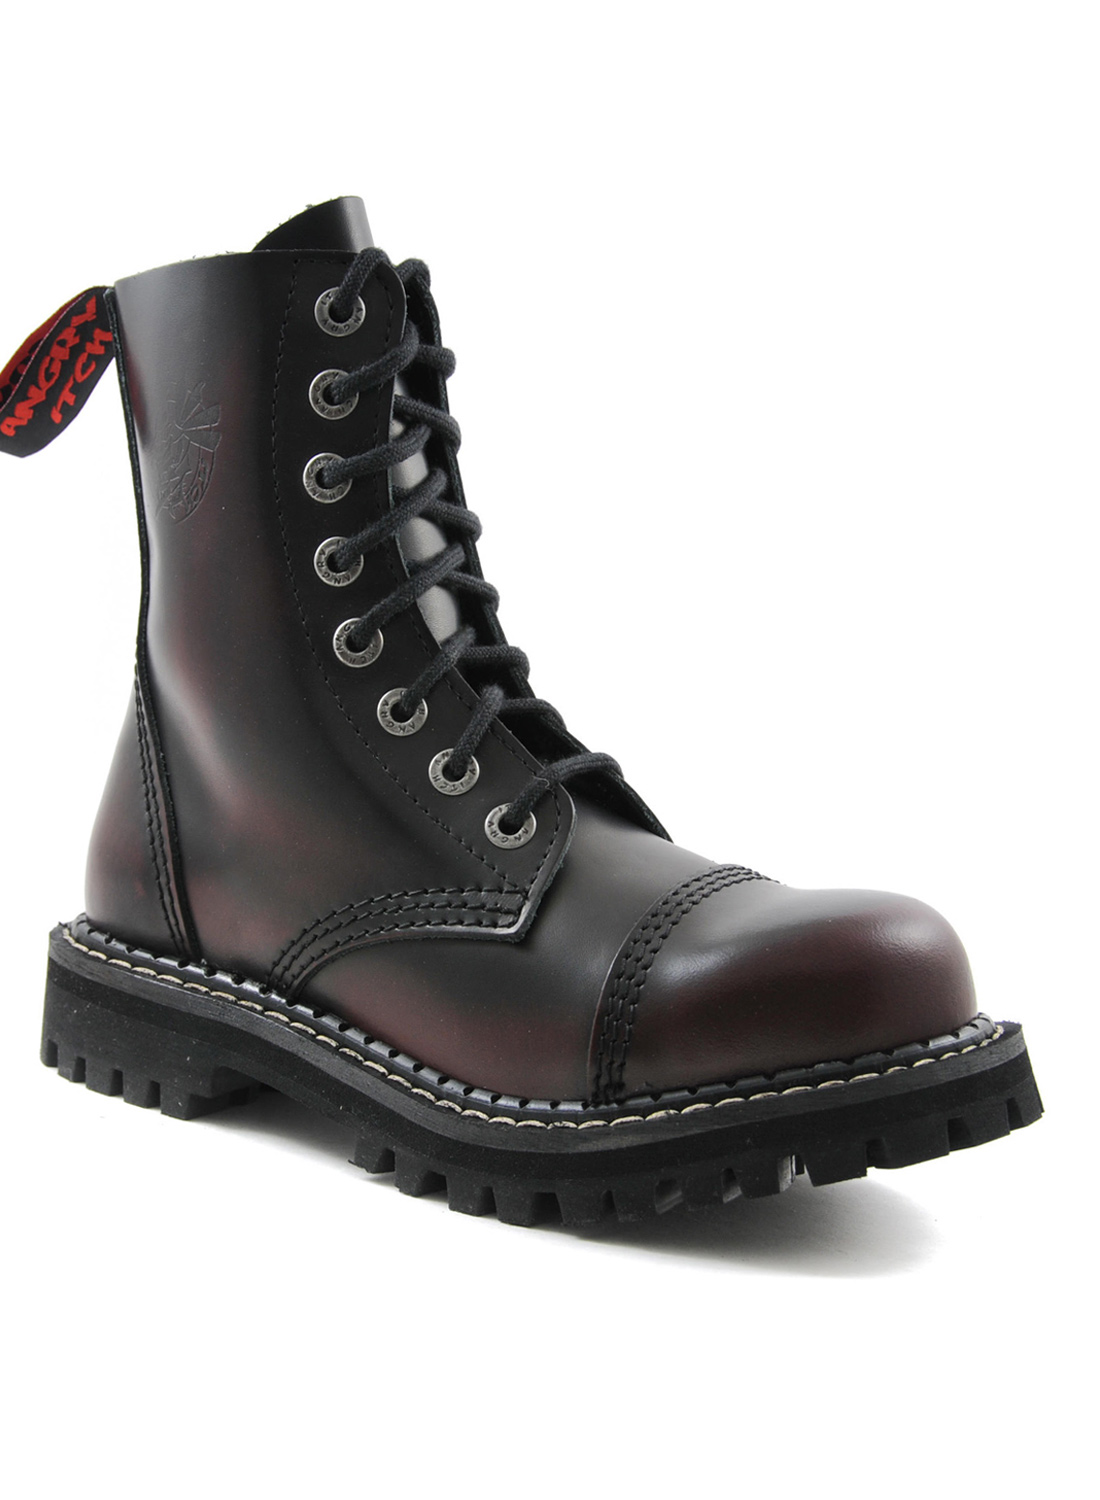 Angry Itch 8 Eye Steel Toe Boots Leather Burgundy